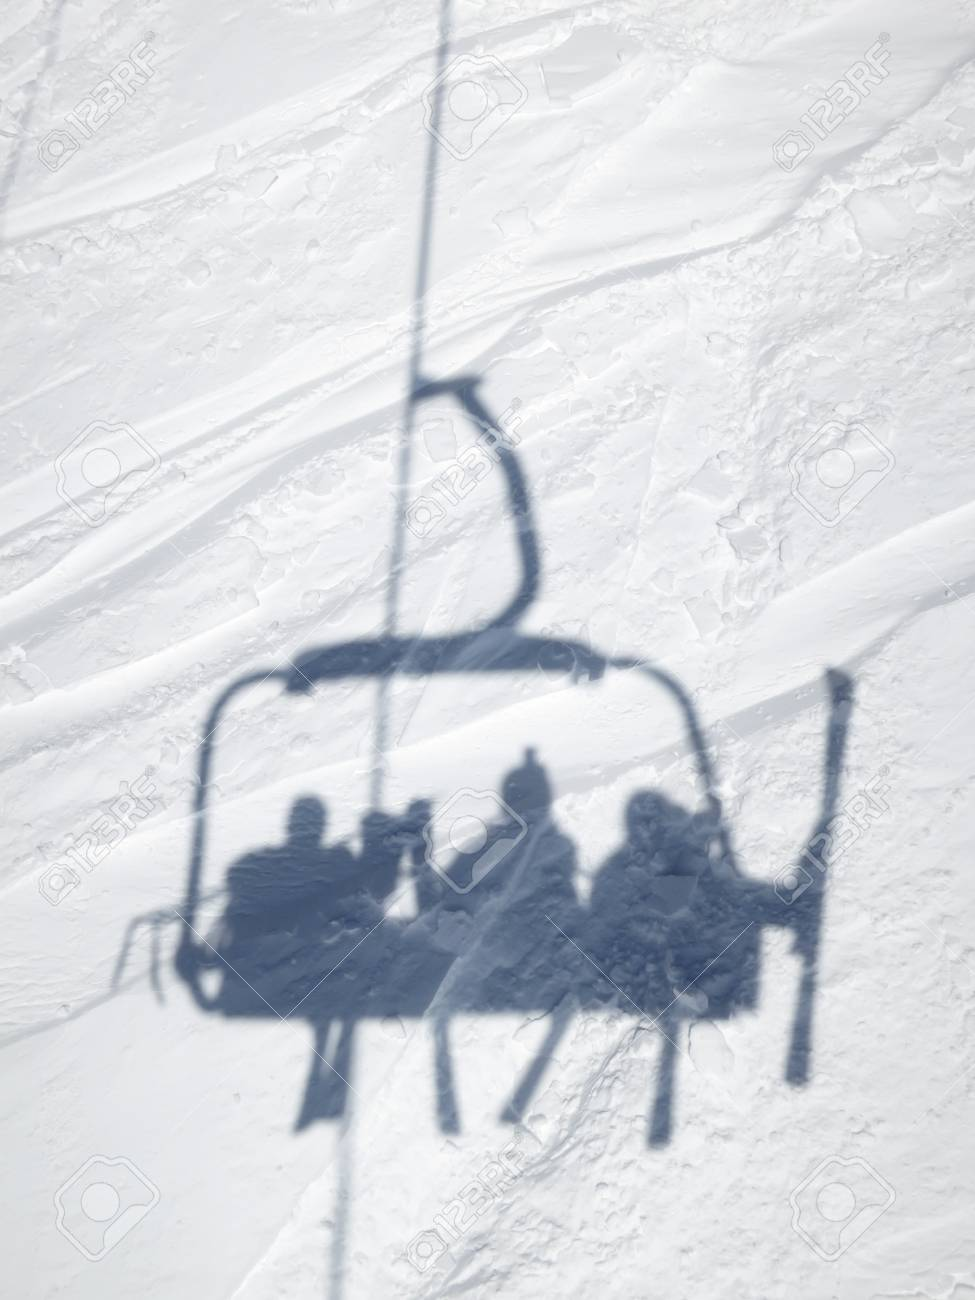 Shadow of skiers in ski lift chair, Val Thorens, France Banque d'images - 95325278